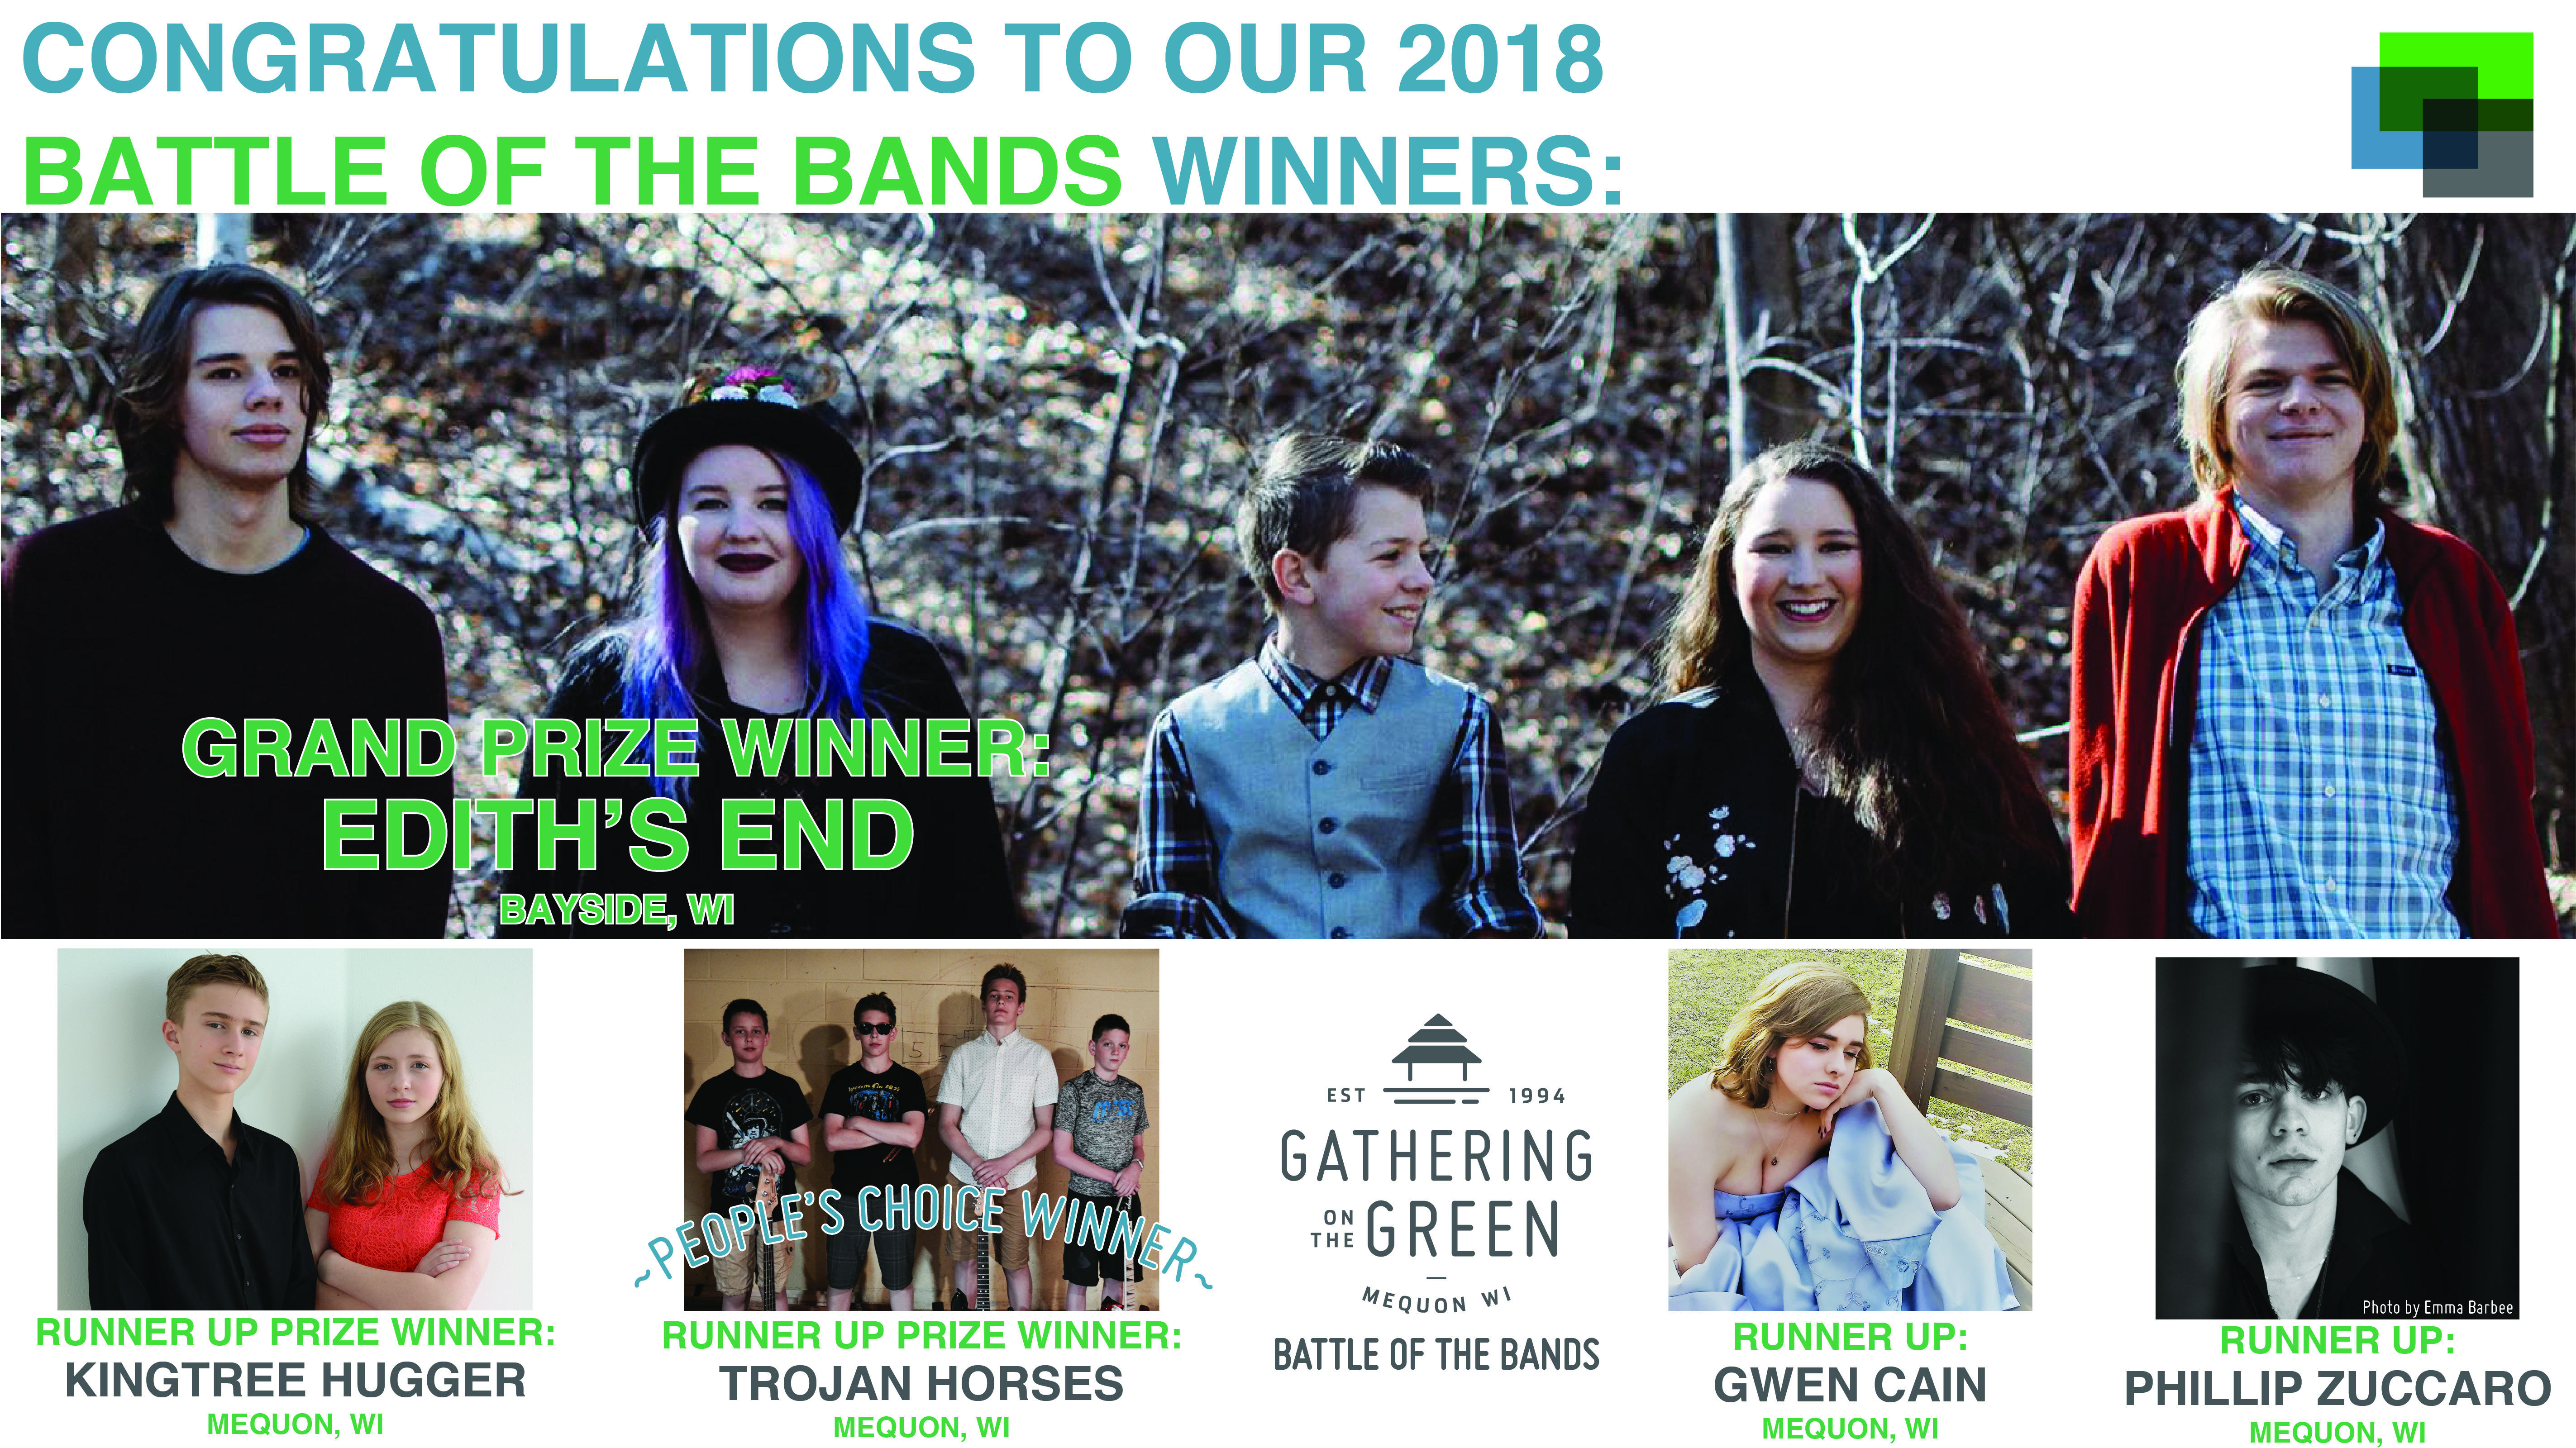 Gathering on the Green - Battle of the Bands Winners - 2018